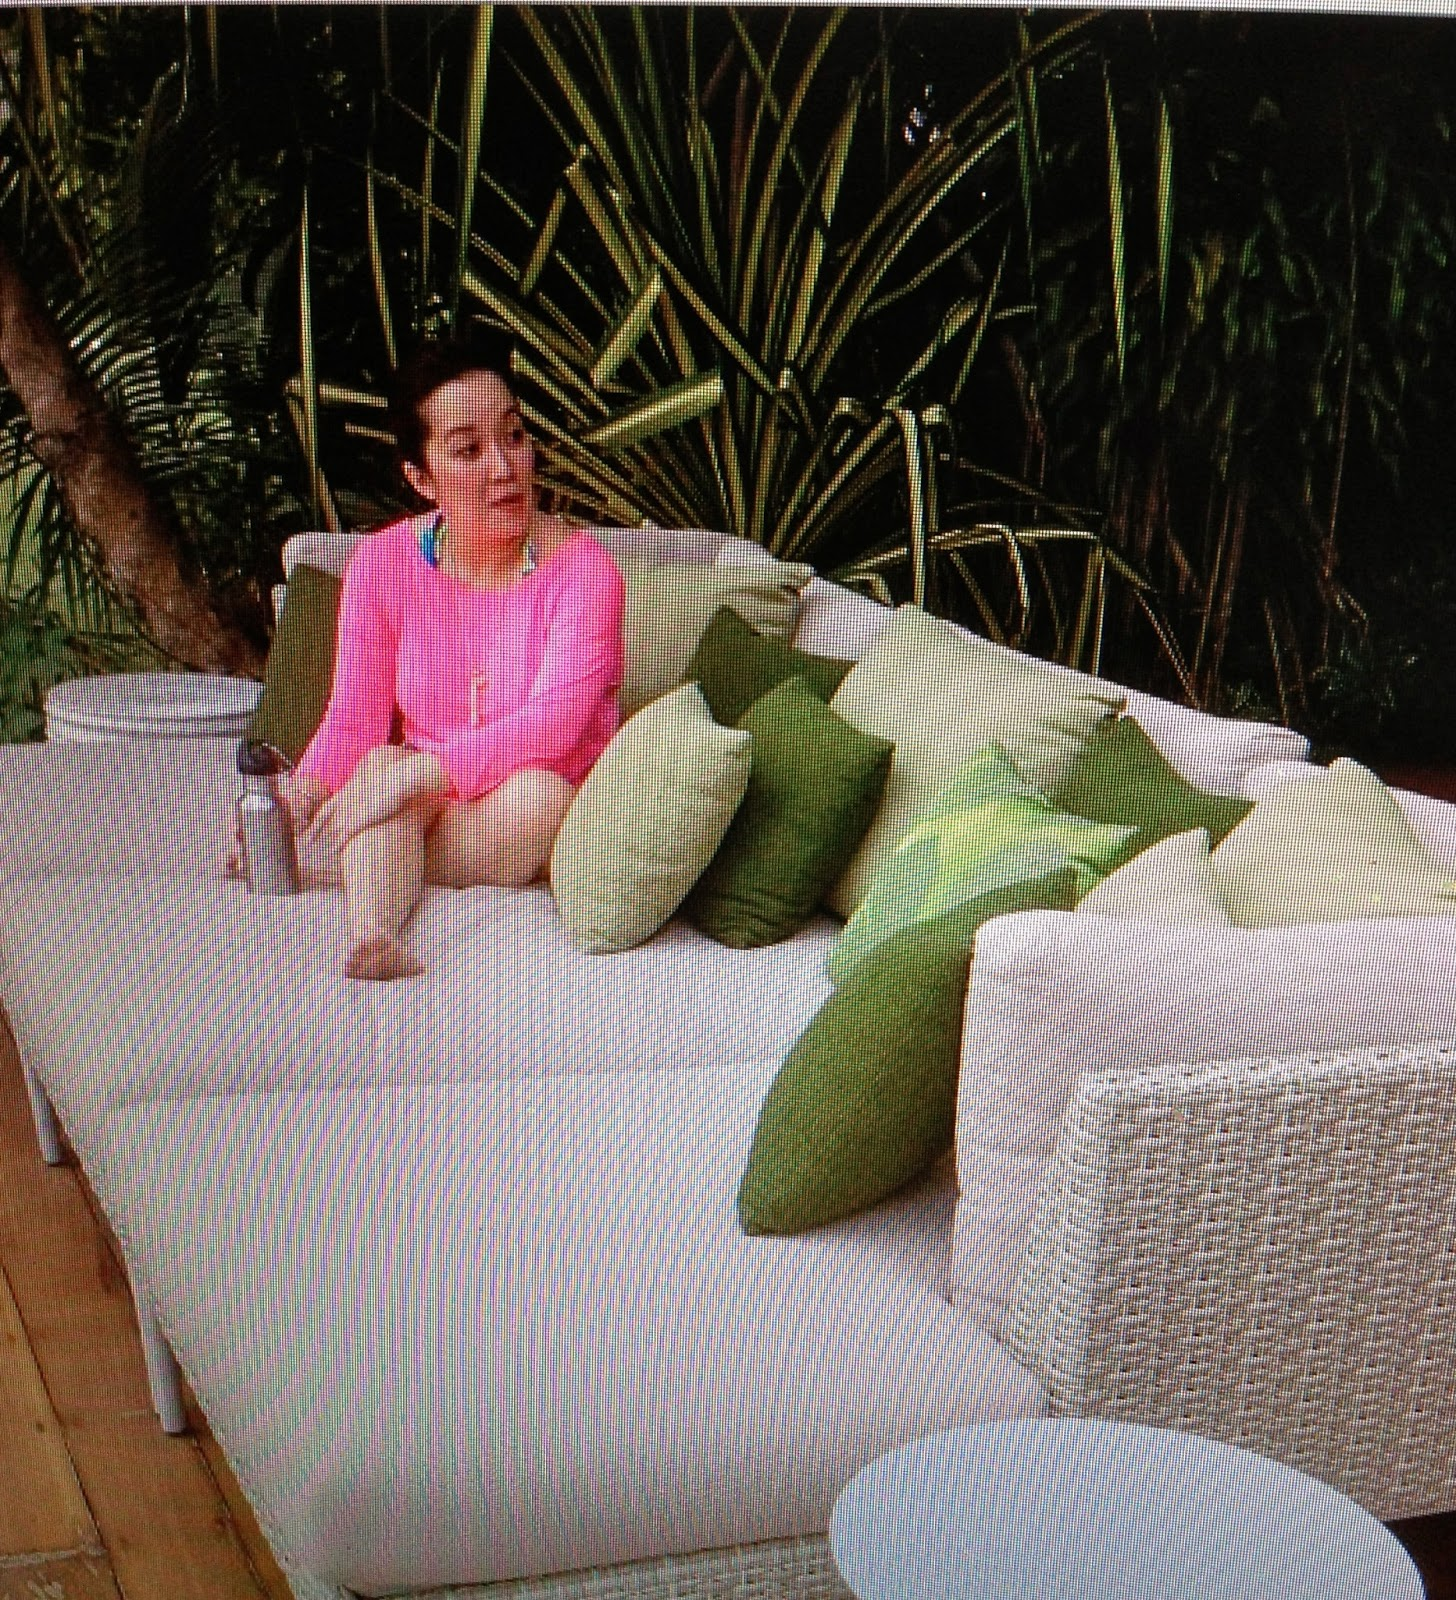 Kris Aquino House Tour A new favorite-dedon island (i